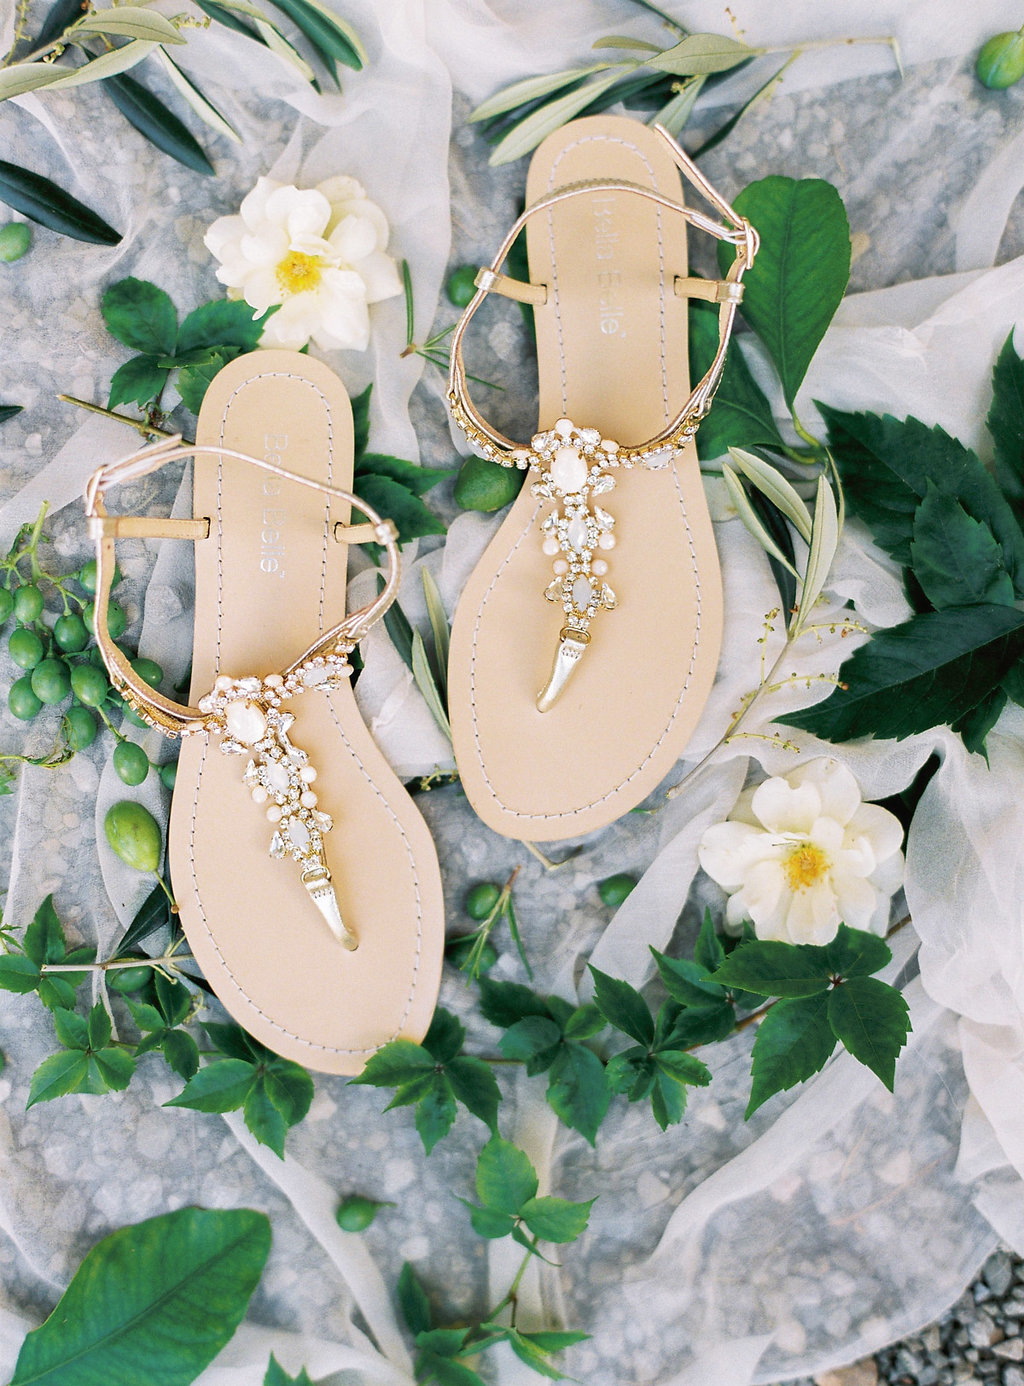 embellished wedding sandals - photo by Katie Grant Photography http://ruffledblog.com/classically-beautiful-intimate-wedding-in-tuscany